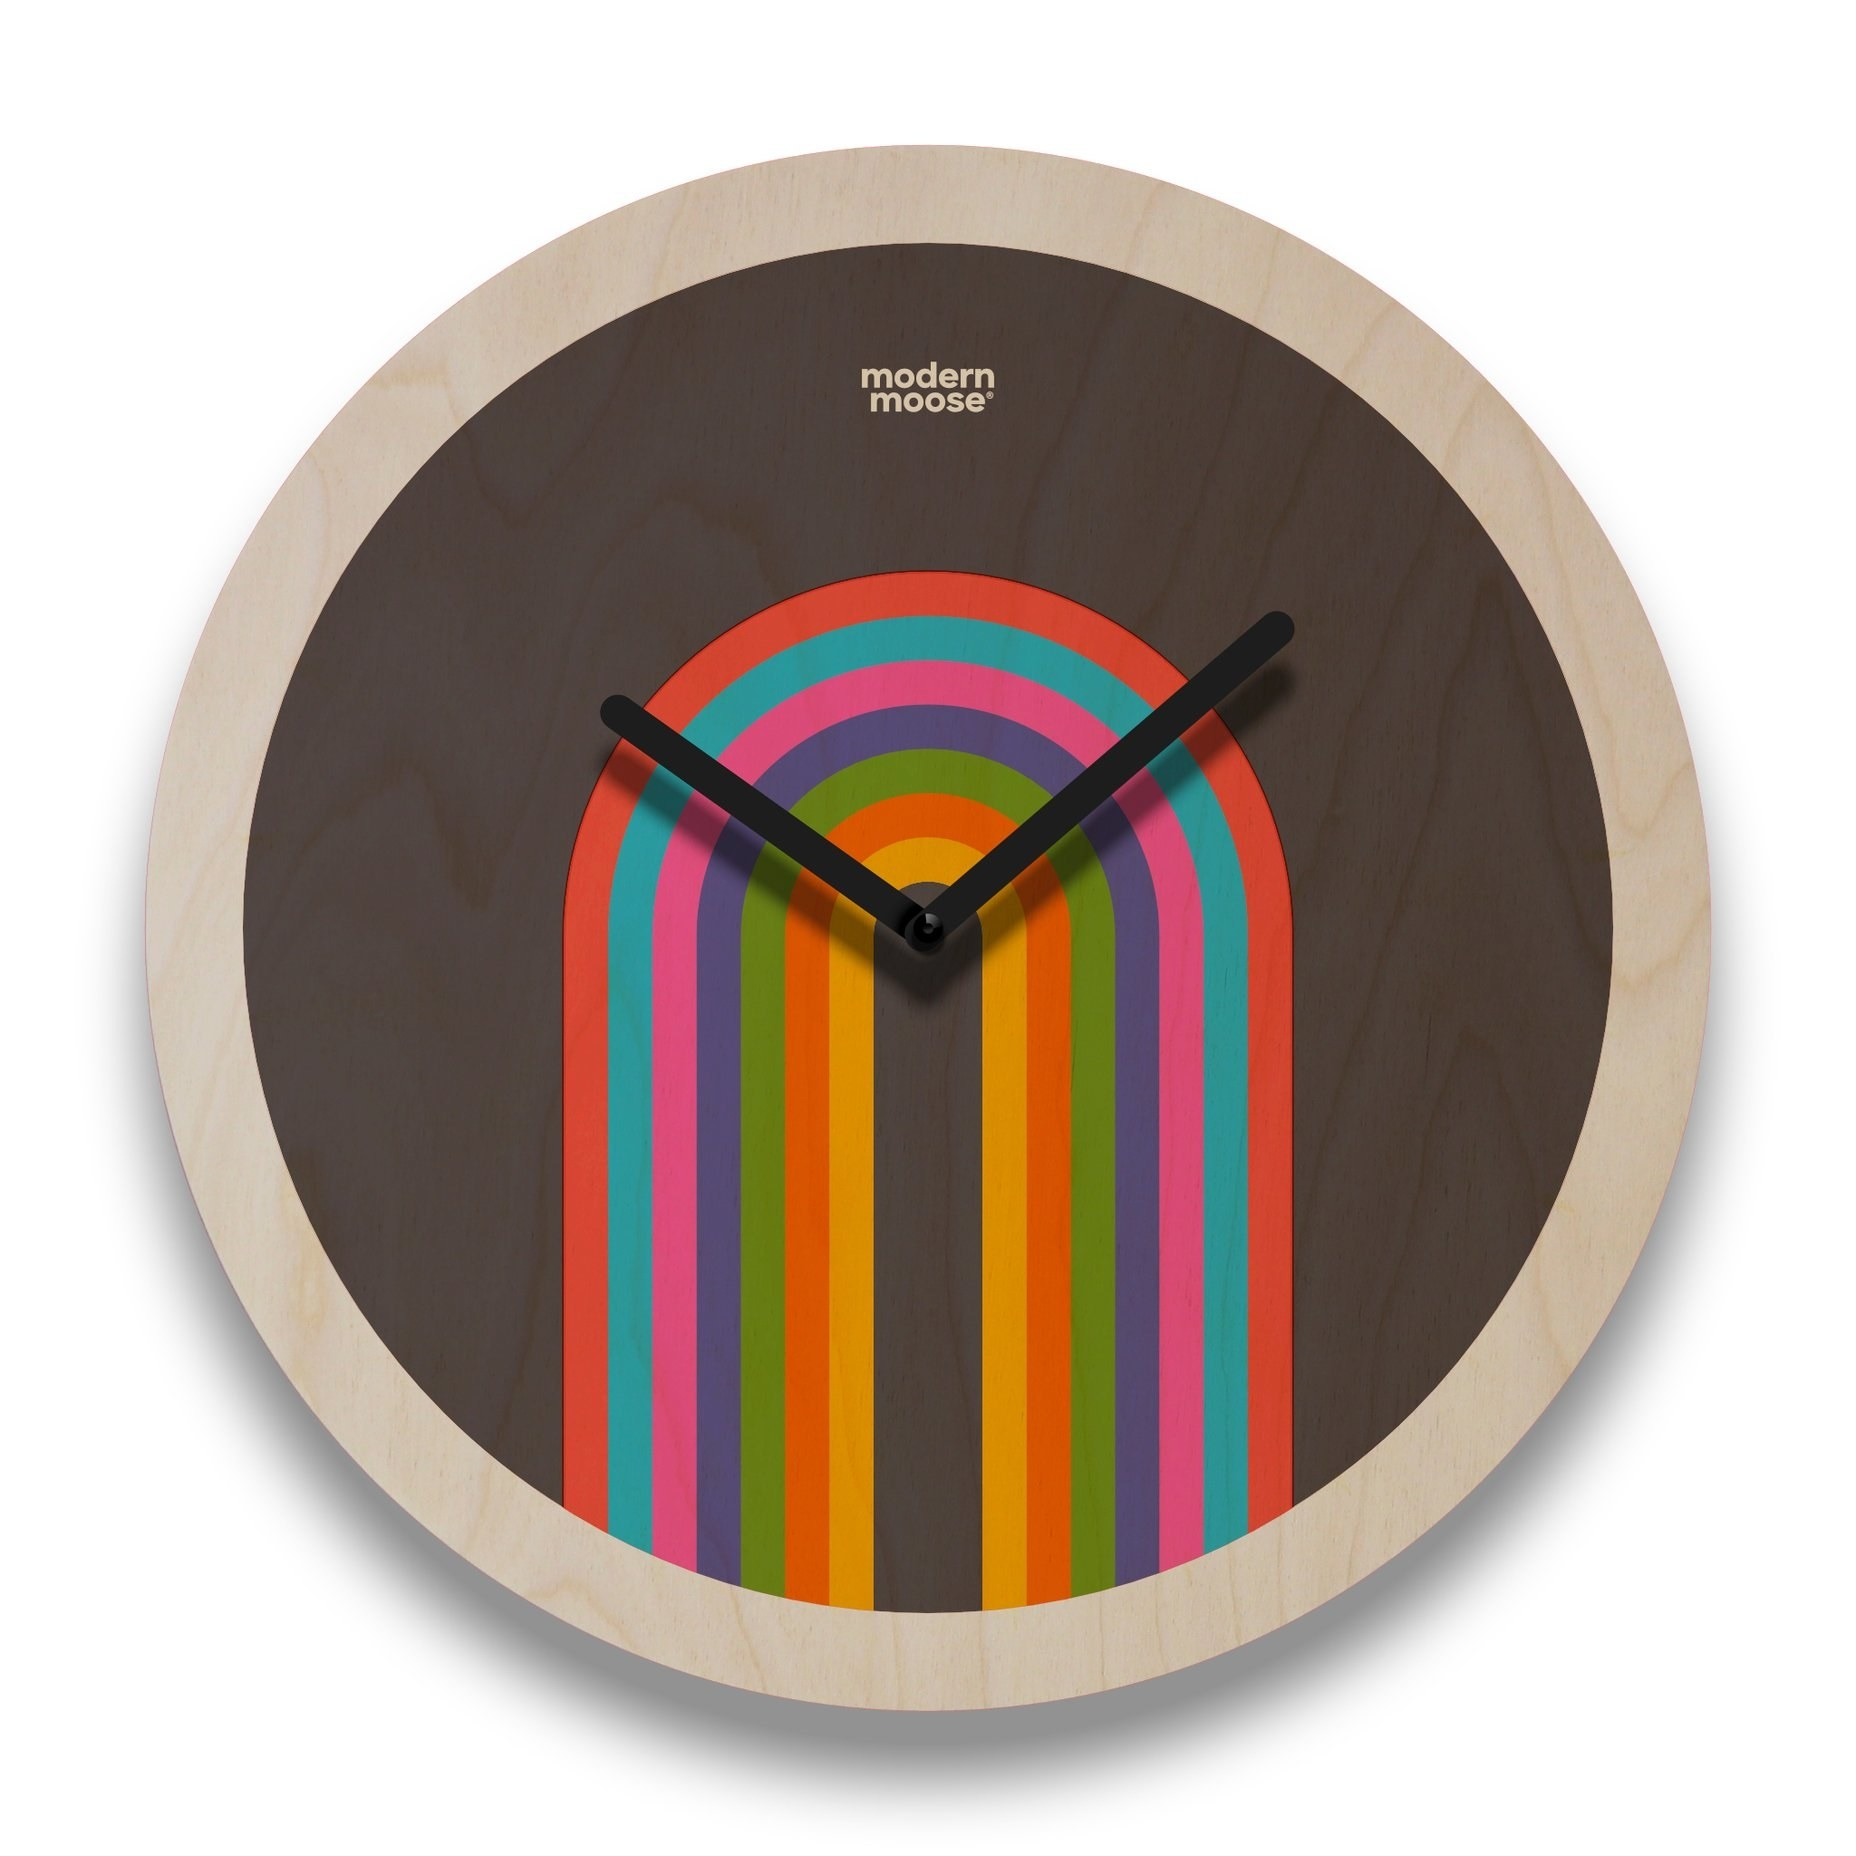 round wall clock with a rainbow on the clock face